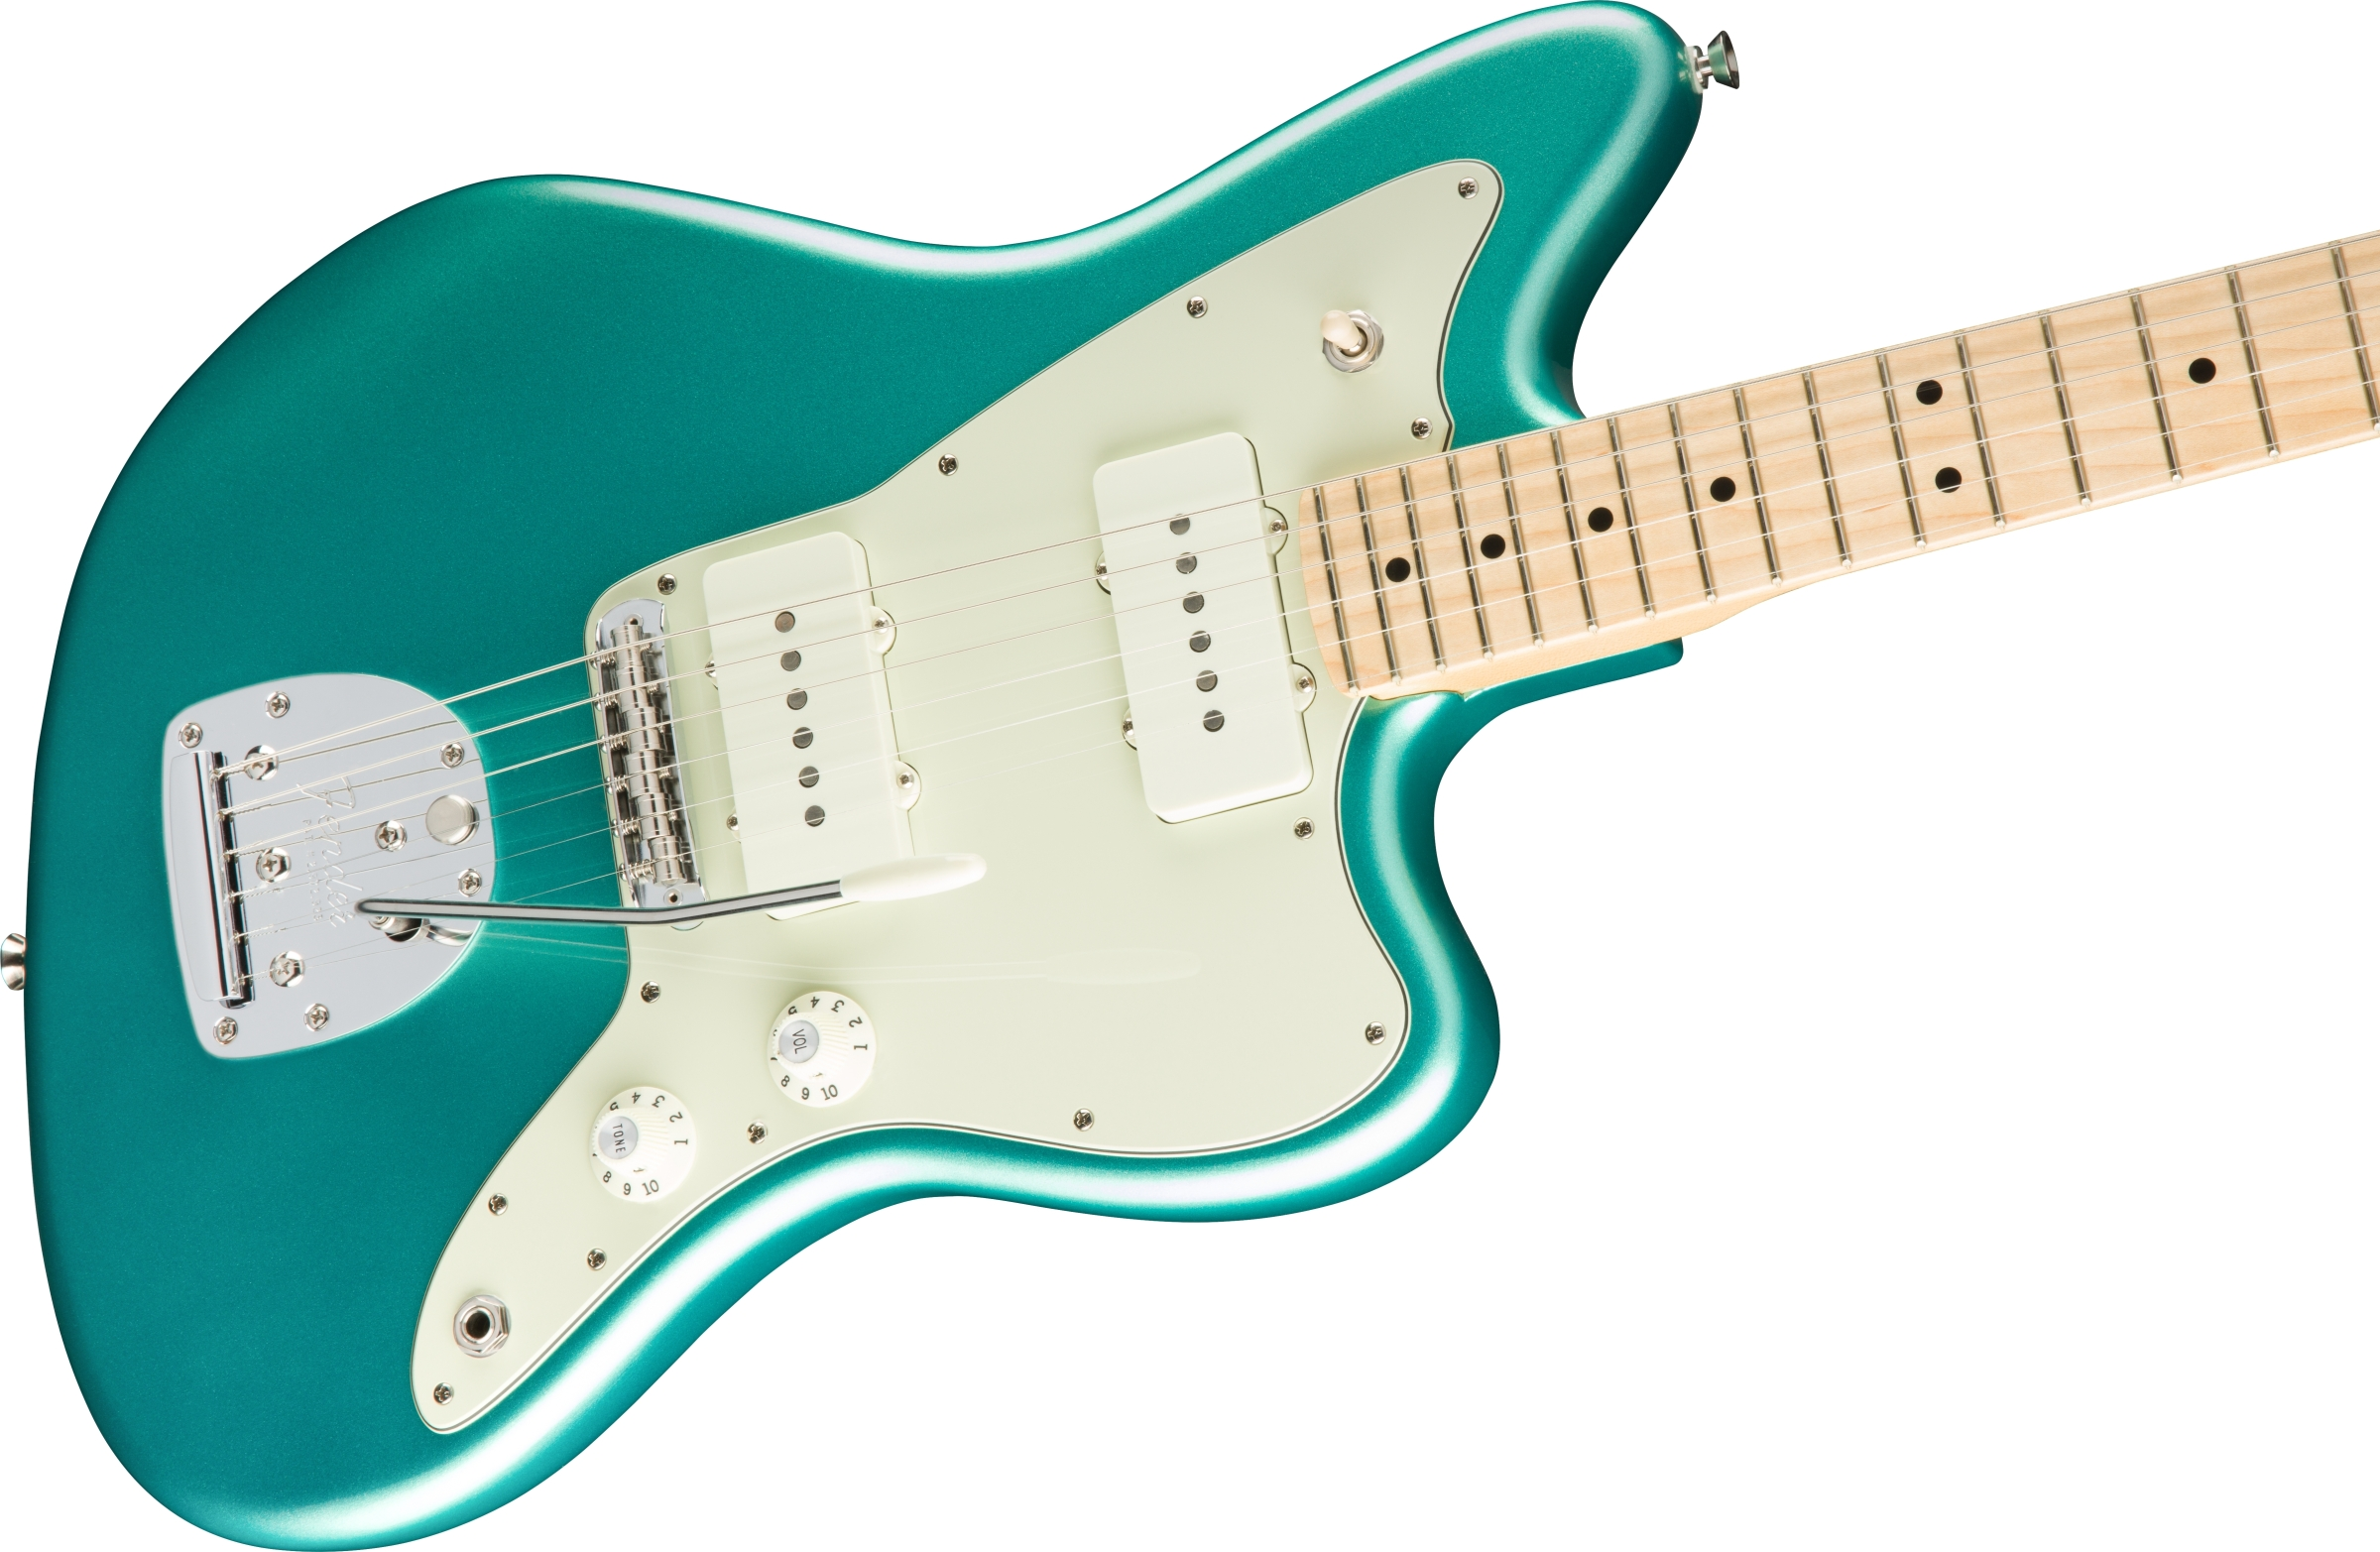 American Professional Jazzmaster Electric Guitars Fender Deluxe Players Strat Wiring Diagram